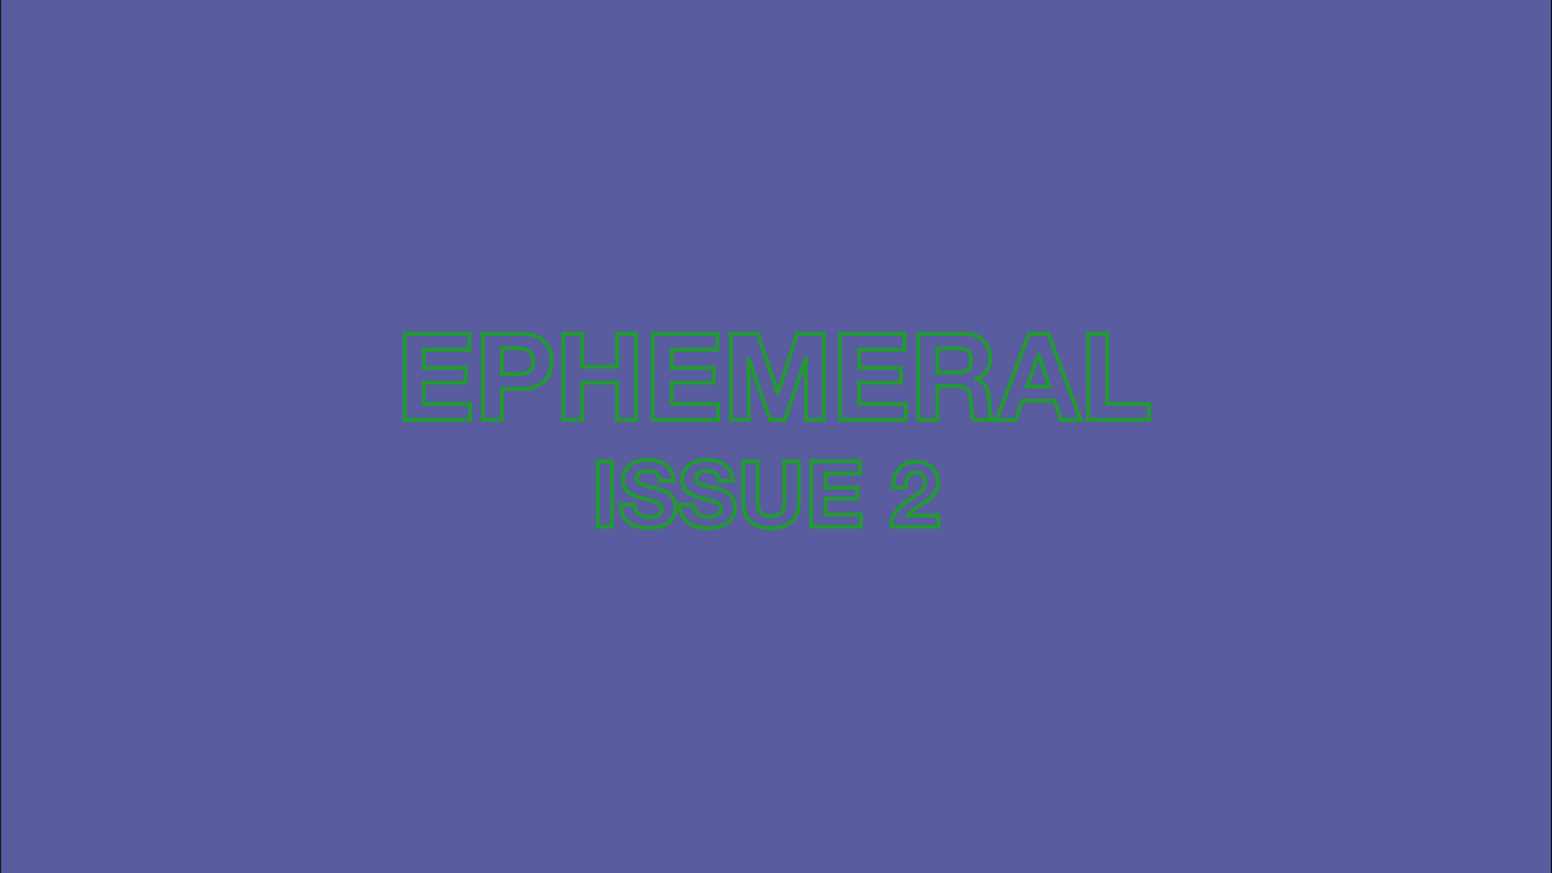 A Norwich-Based, Creative-led, printed publication that explores subjects closely associated to ephemerality.